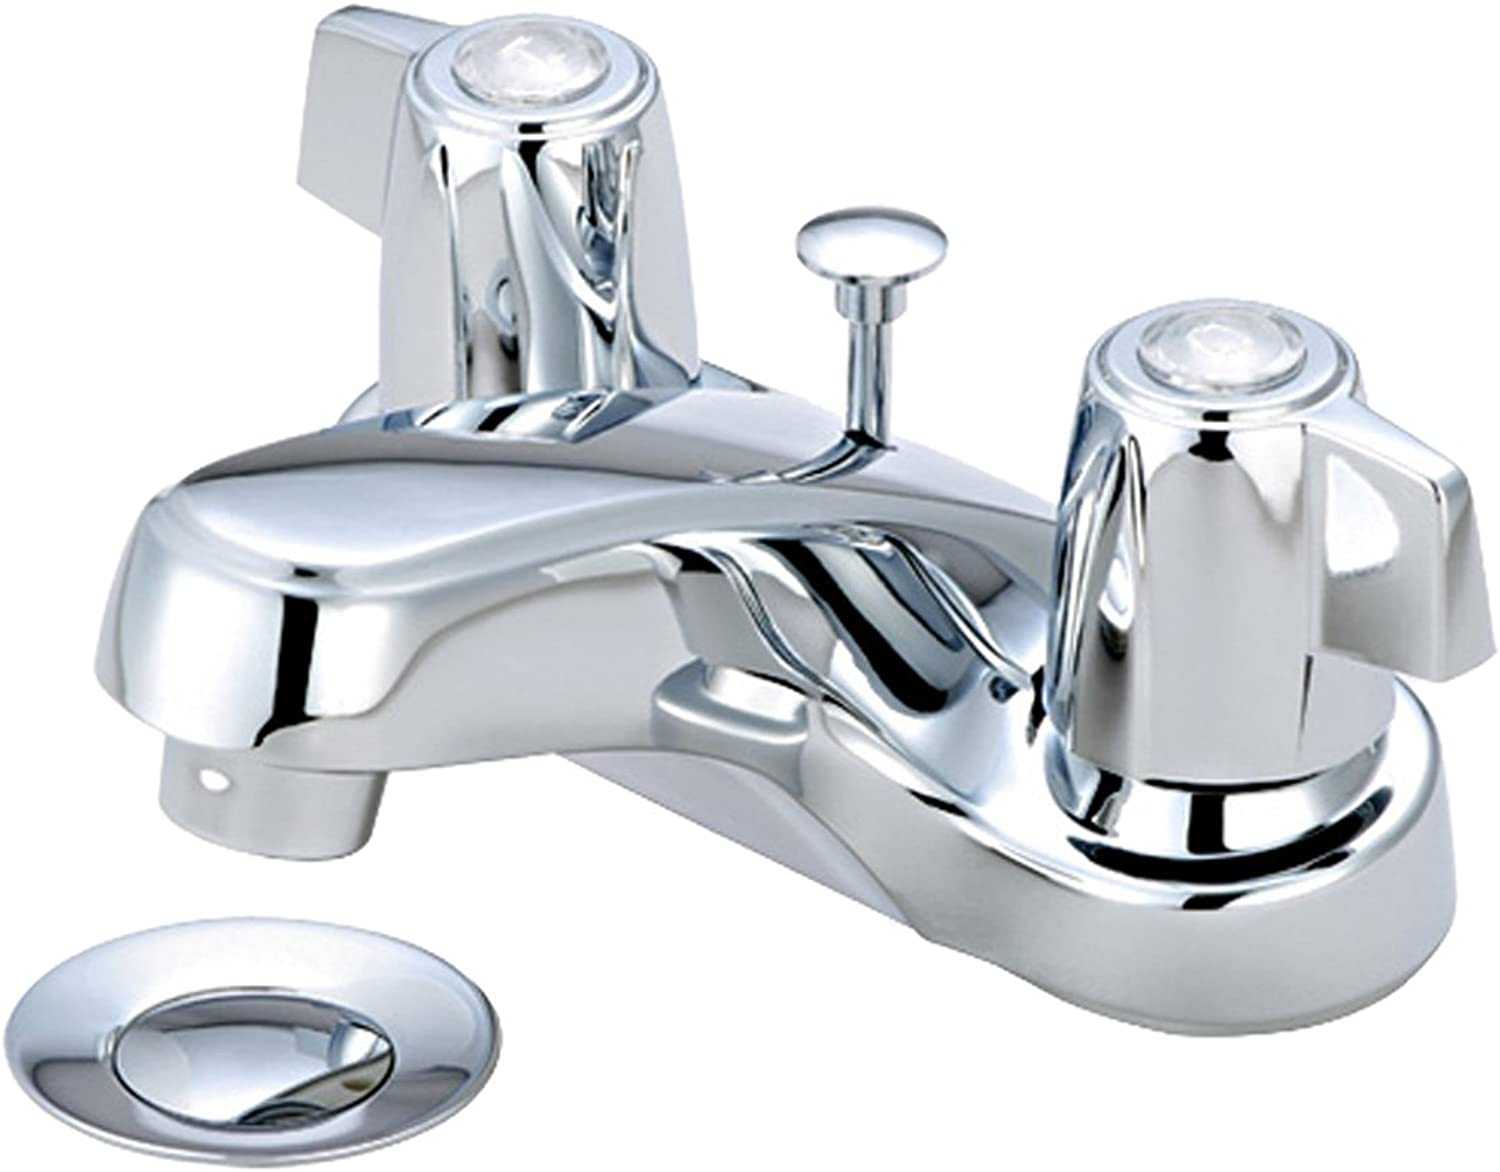 Aviditi Olympia Series L-7292 Elite Two Mini Blade Handle Lavatory Faucet with Brass Pop-Up Drain Assembly, Chrome